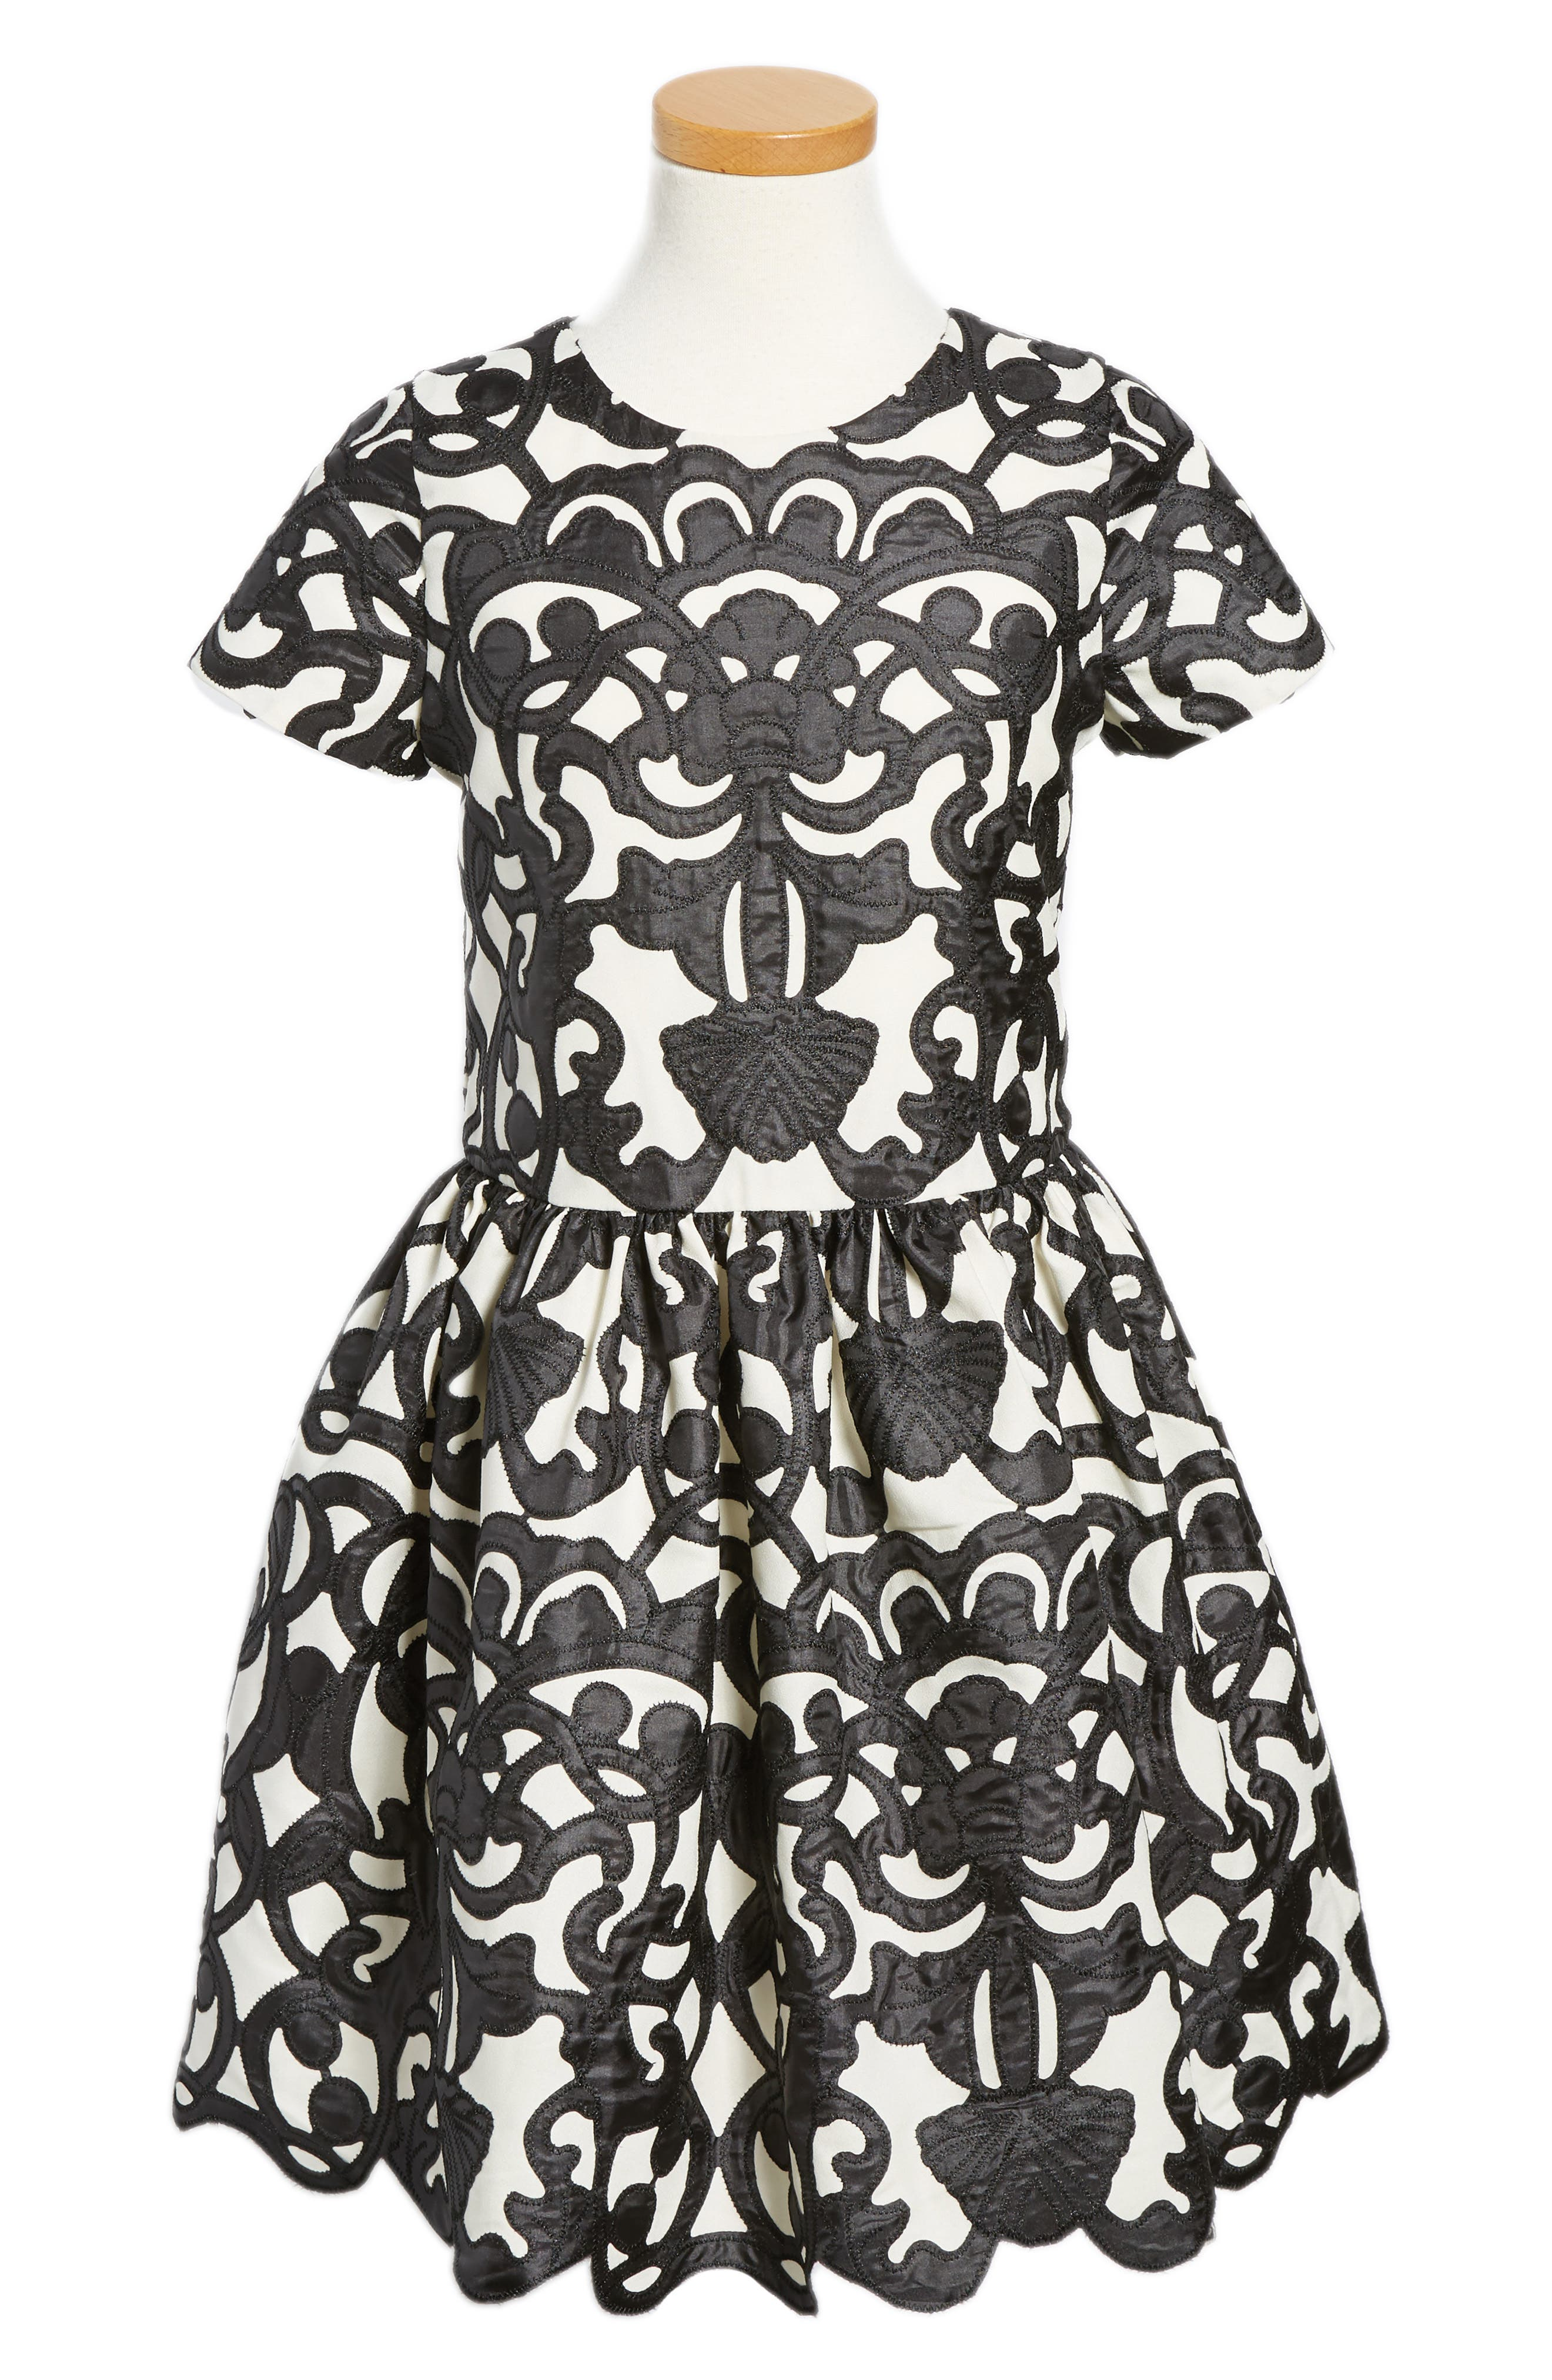 Alternate Image 1 Selected - Ava & Yelly Laser Cut Appliqué Dress (Big Girls)